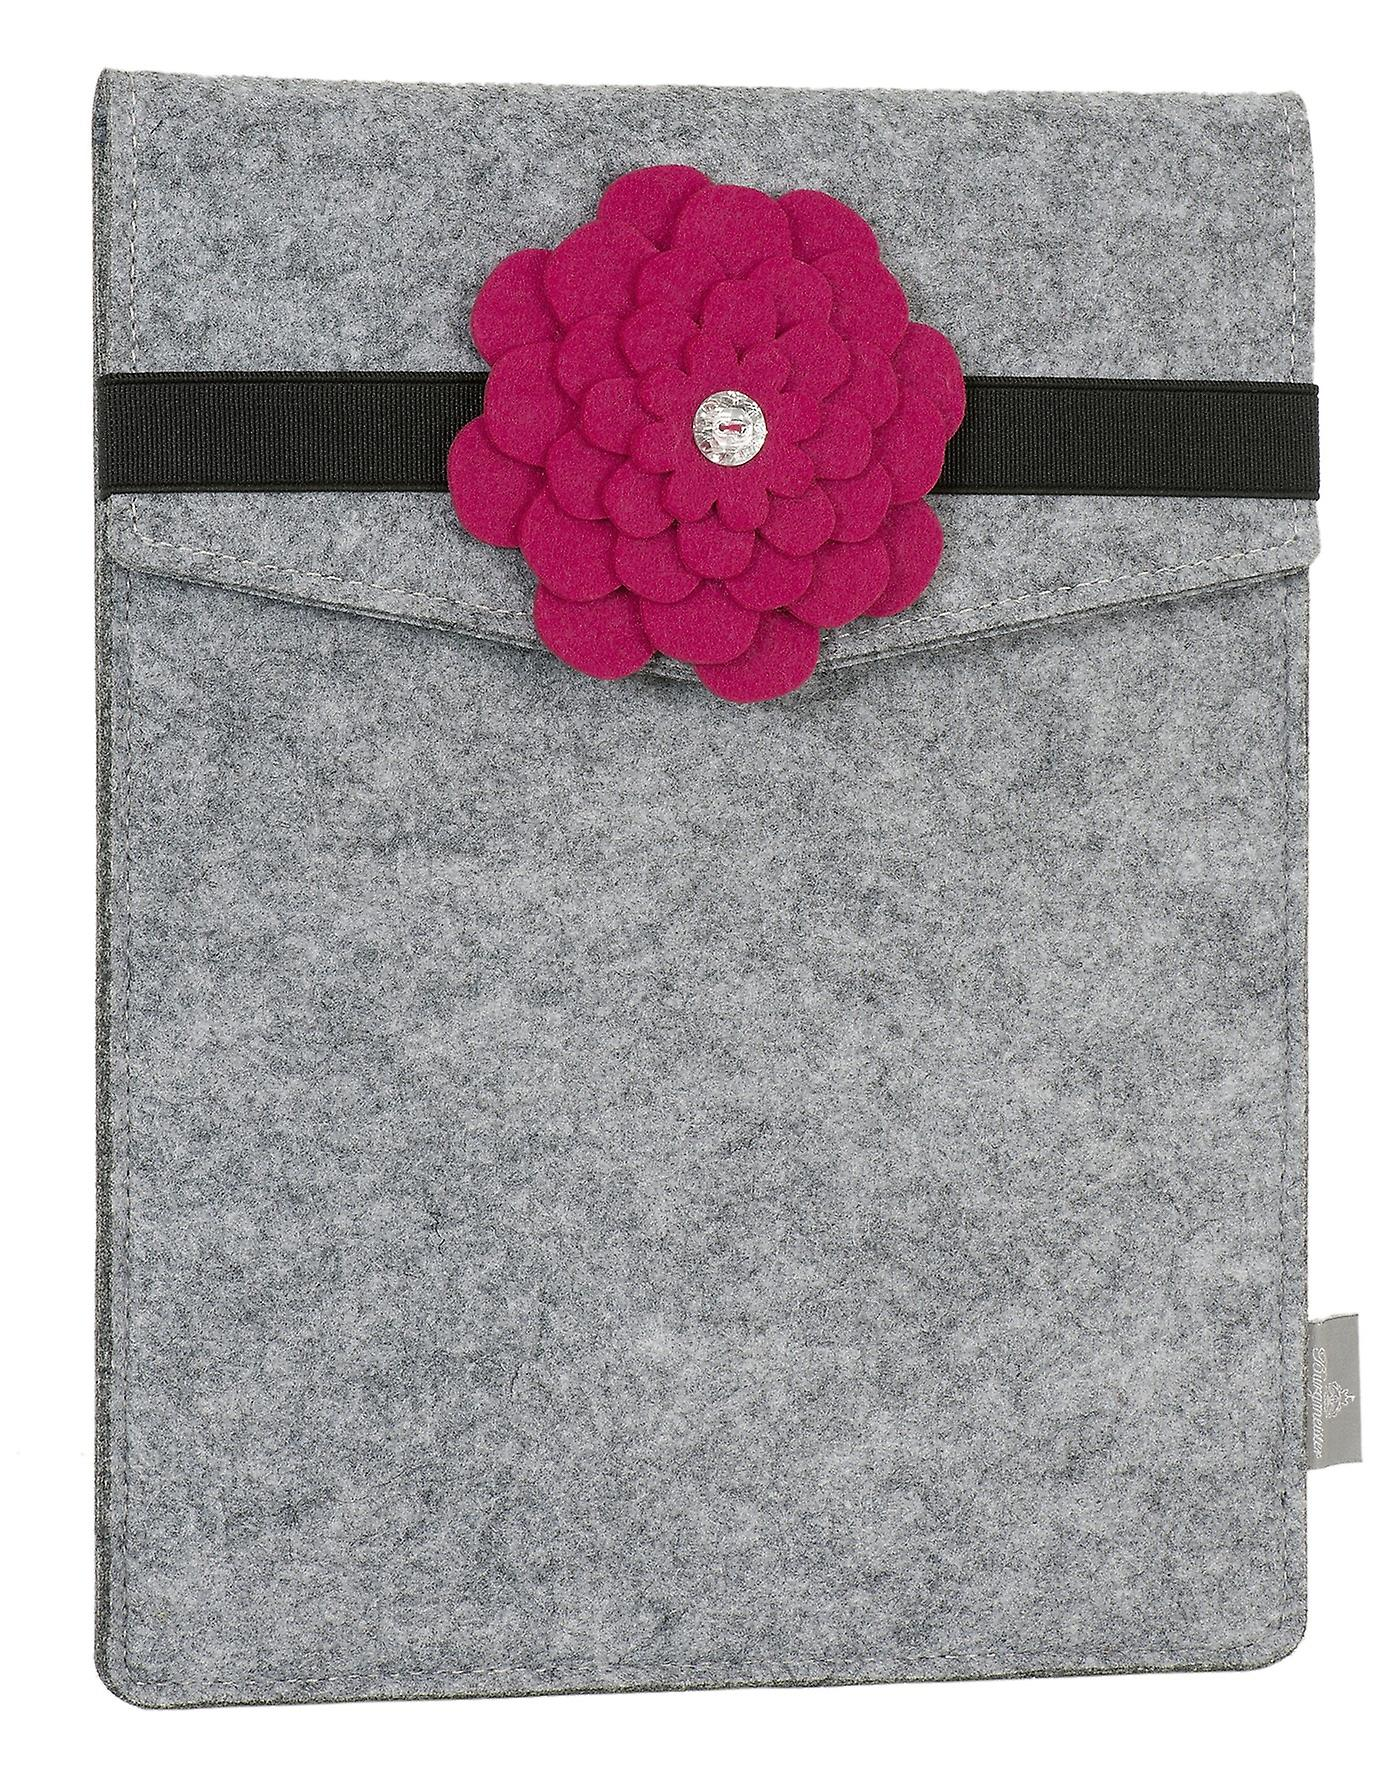 Burgmeister ladies/gents Ipad-/Tablet PC cover felt, HBM3019-164